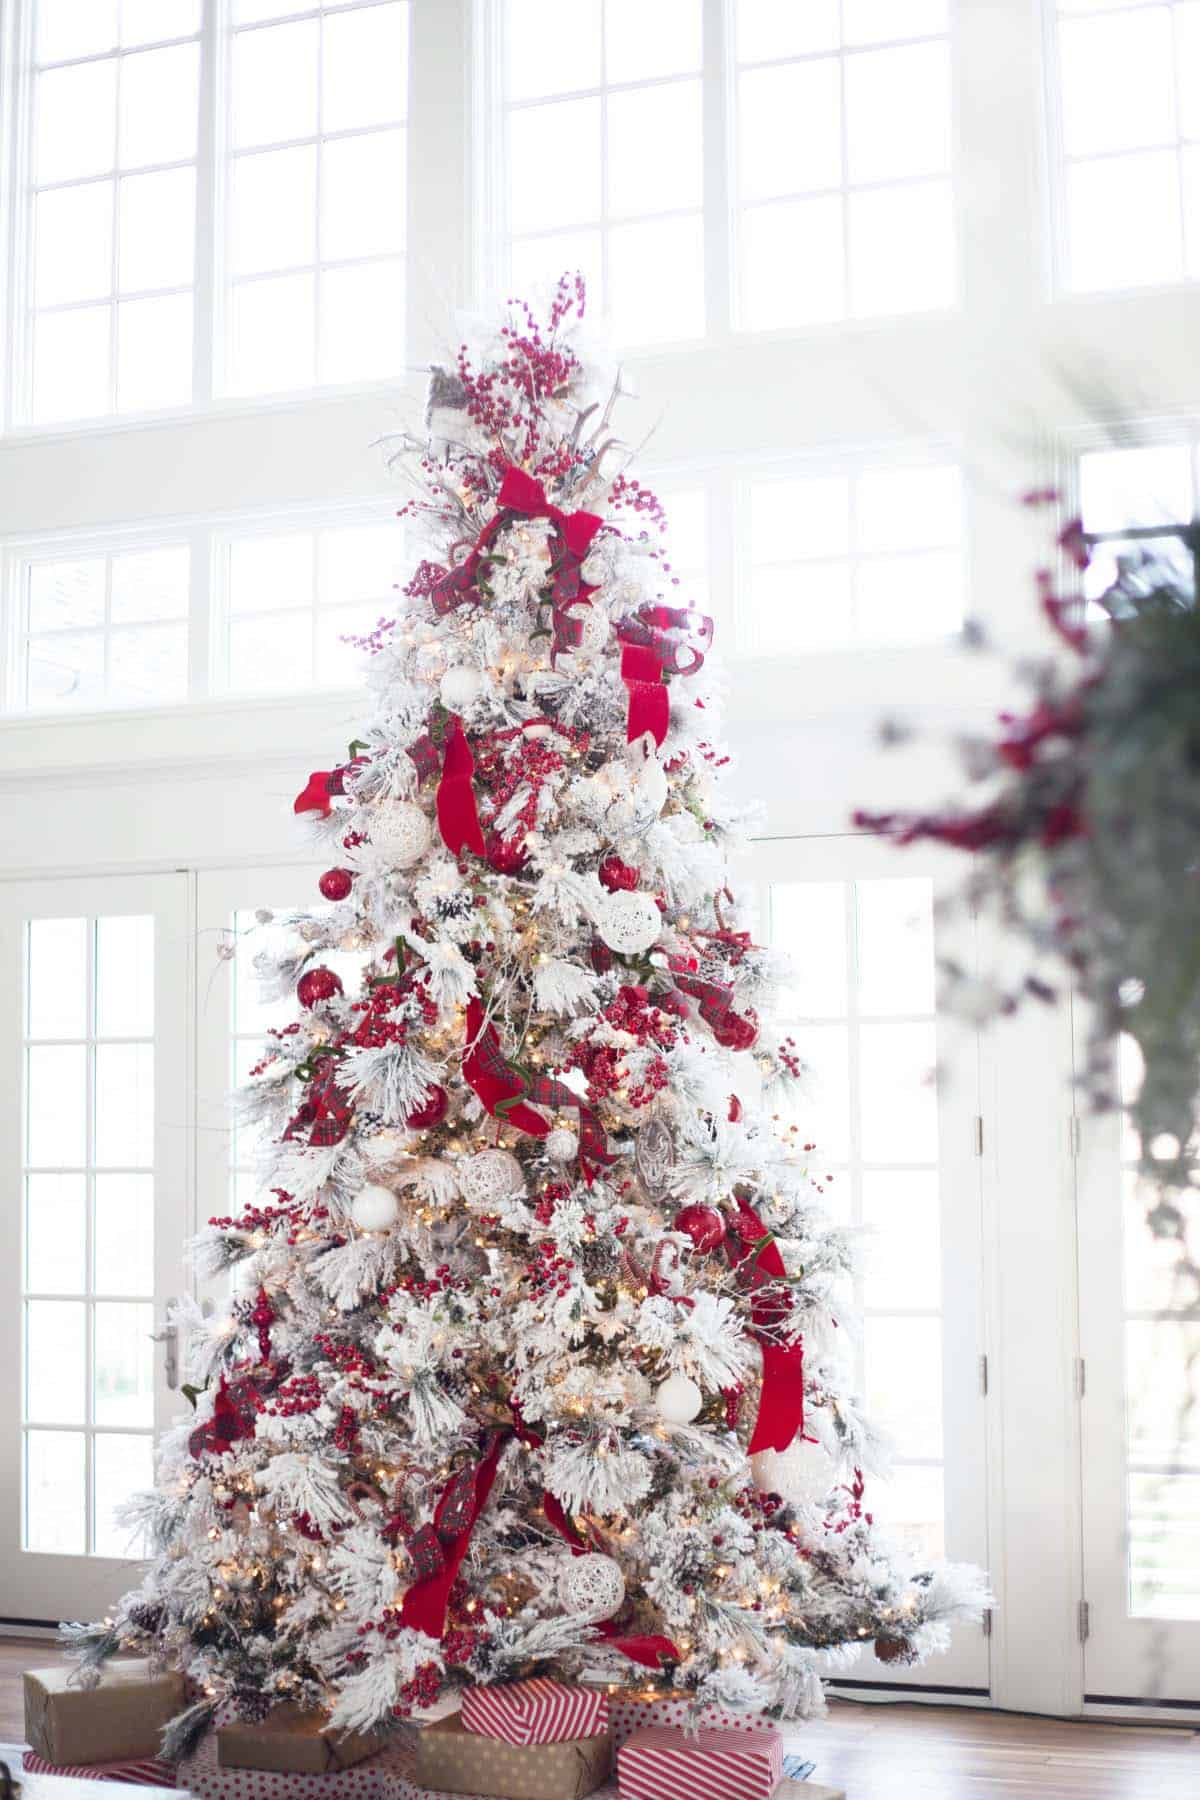 White and red Christmas tree decorations